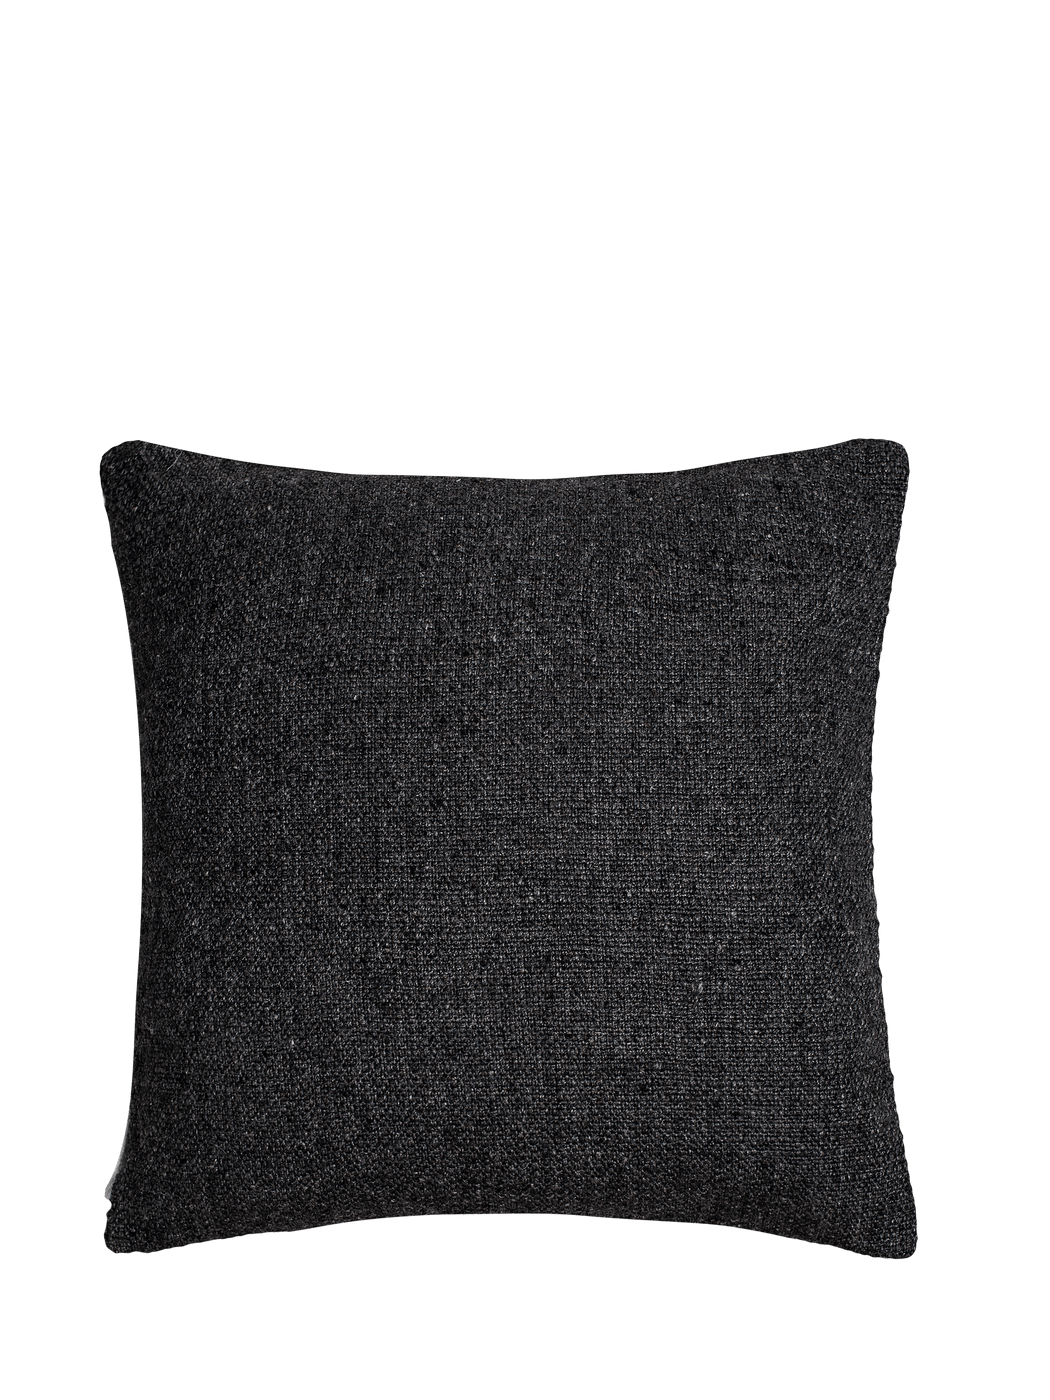 Basketweave Pillow Cover - Charcoal